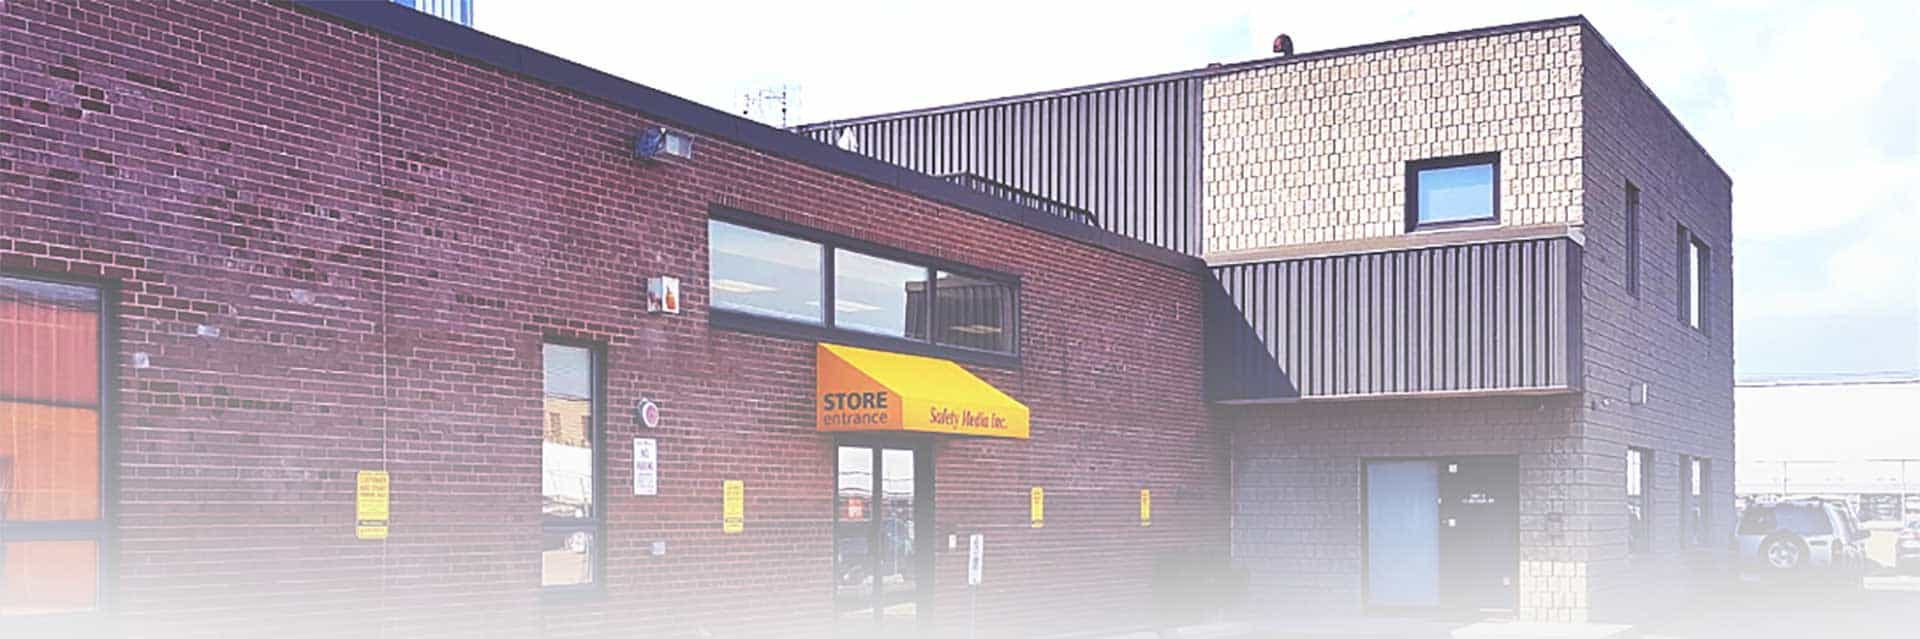 Safety Media Store Entrance: brick building with yellow sign reading 'Safety Media' overtop a glass door.